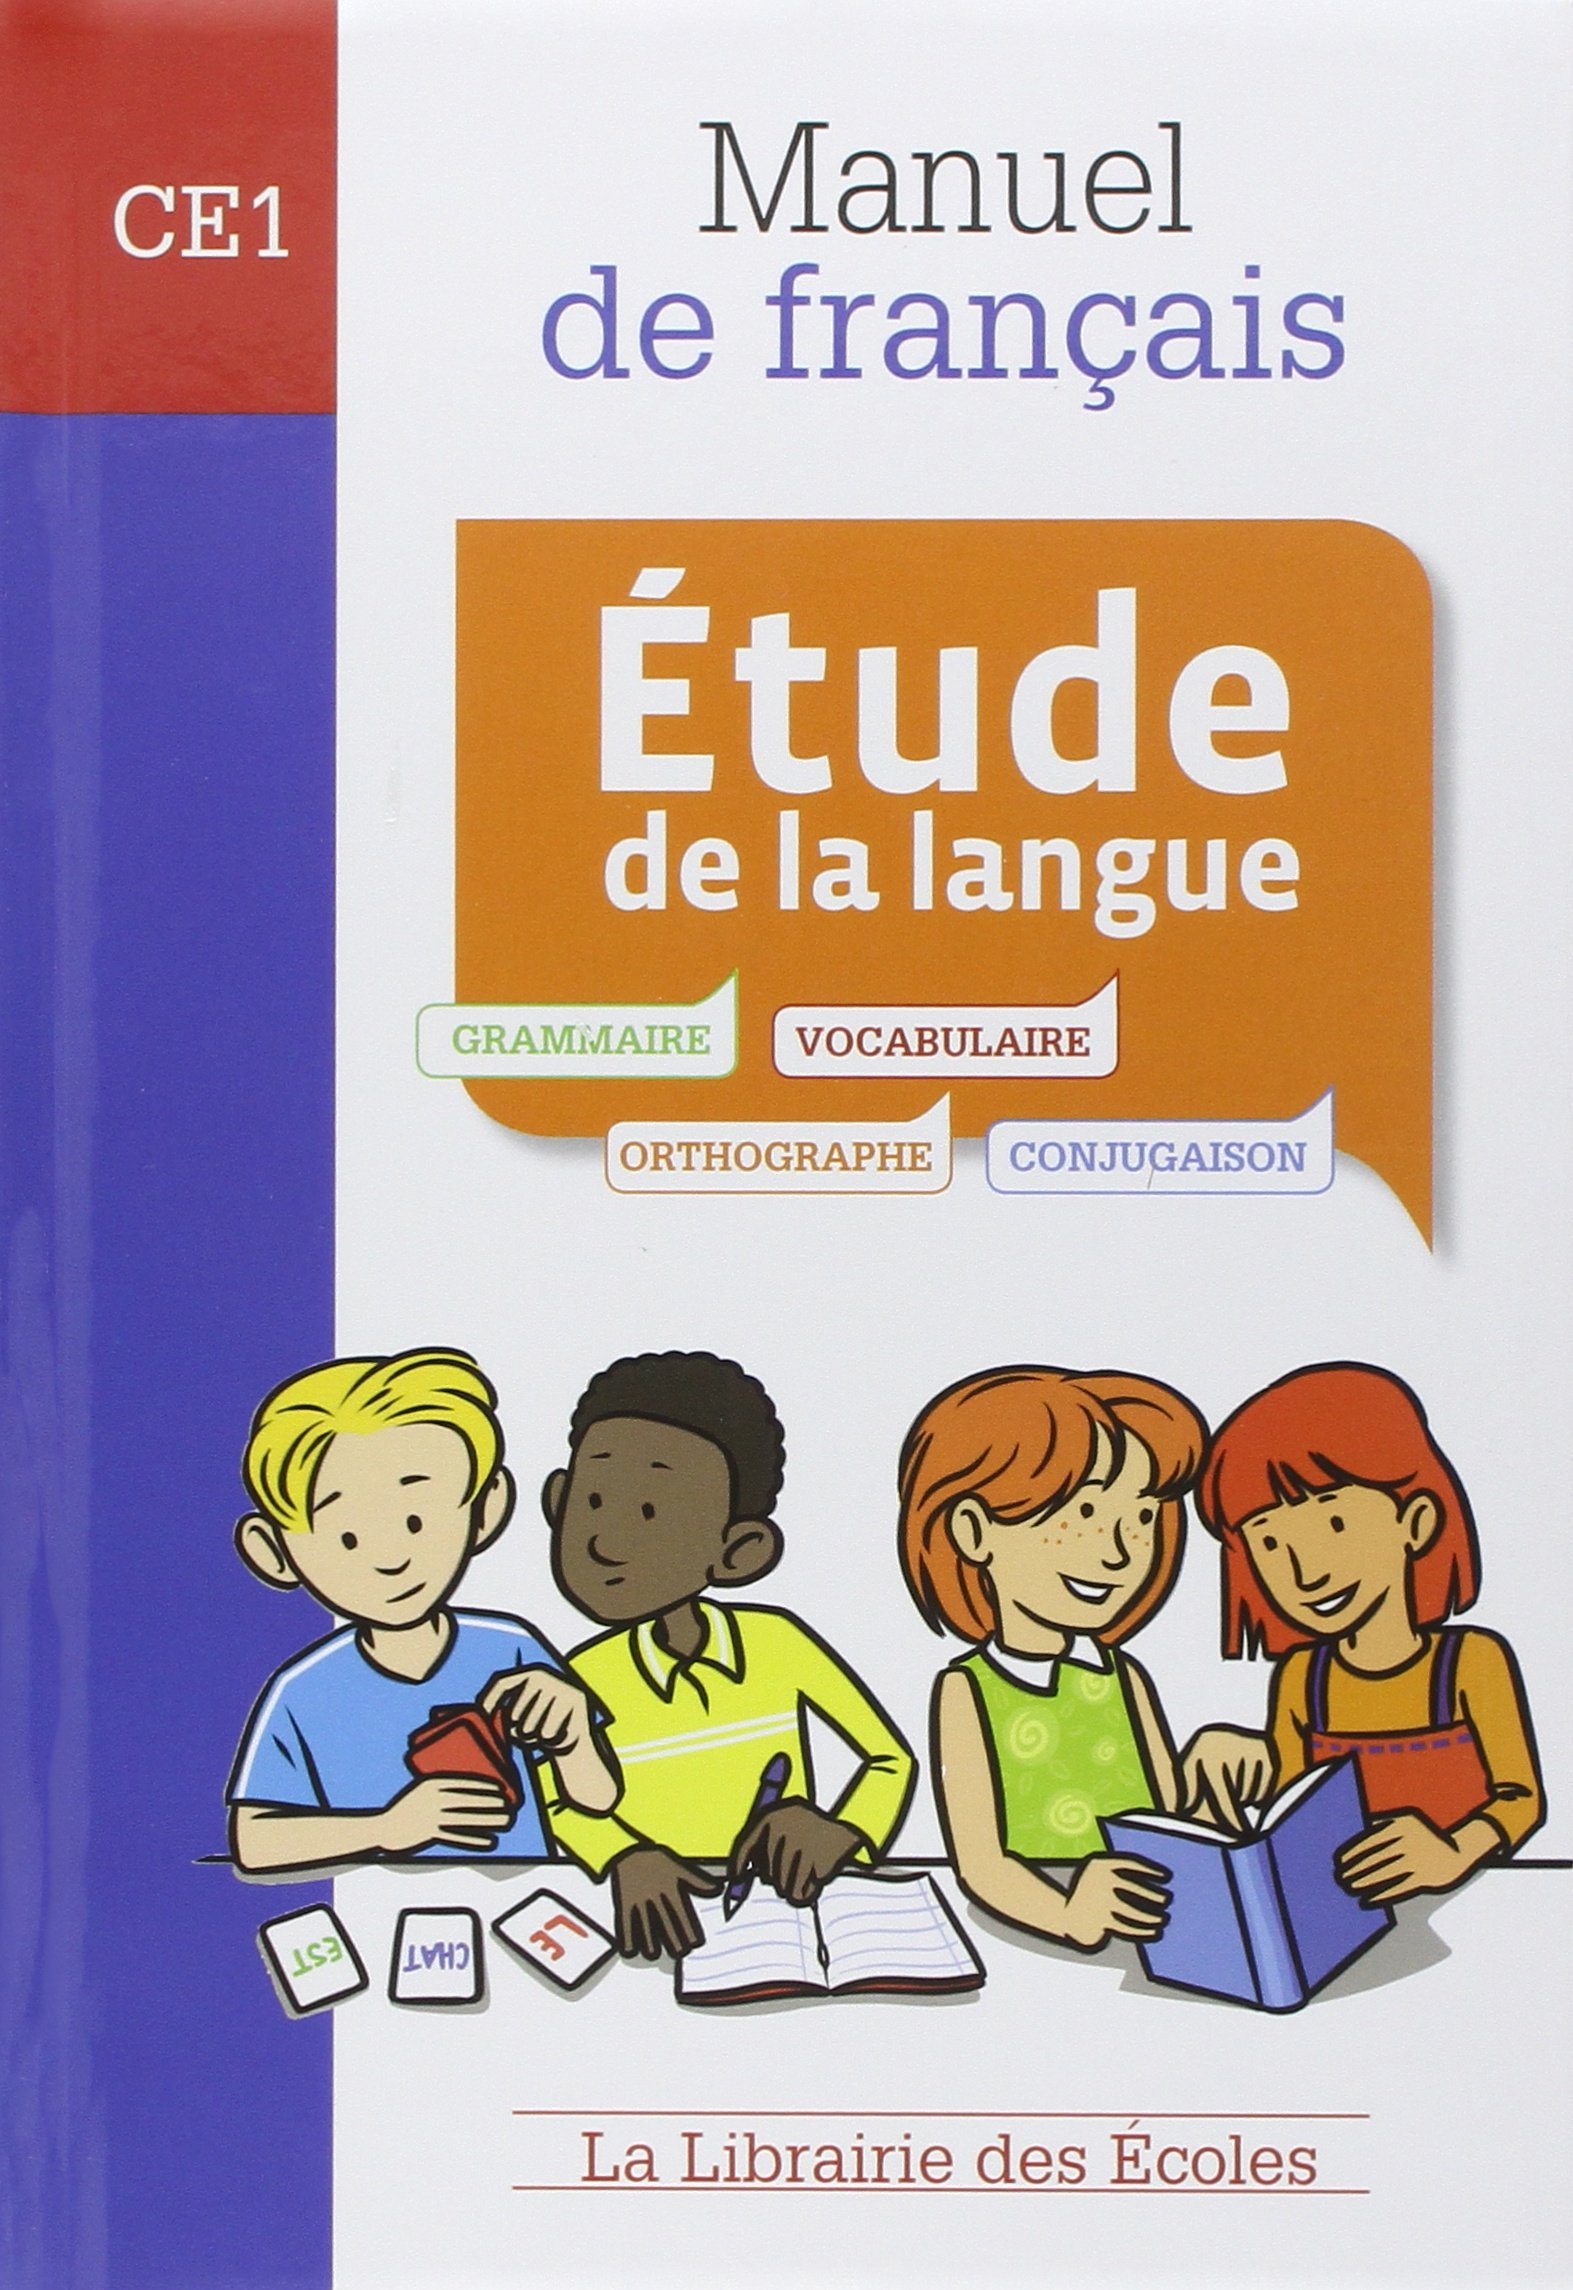 Ce1 Manuel De Francais Amazon Ca Books